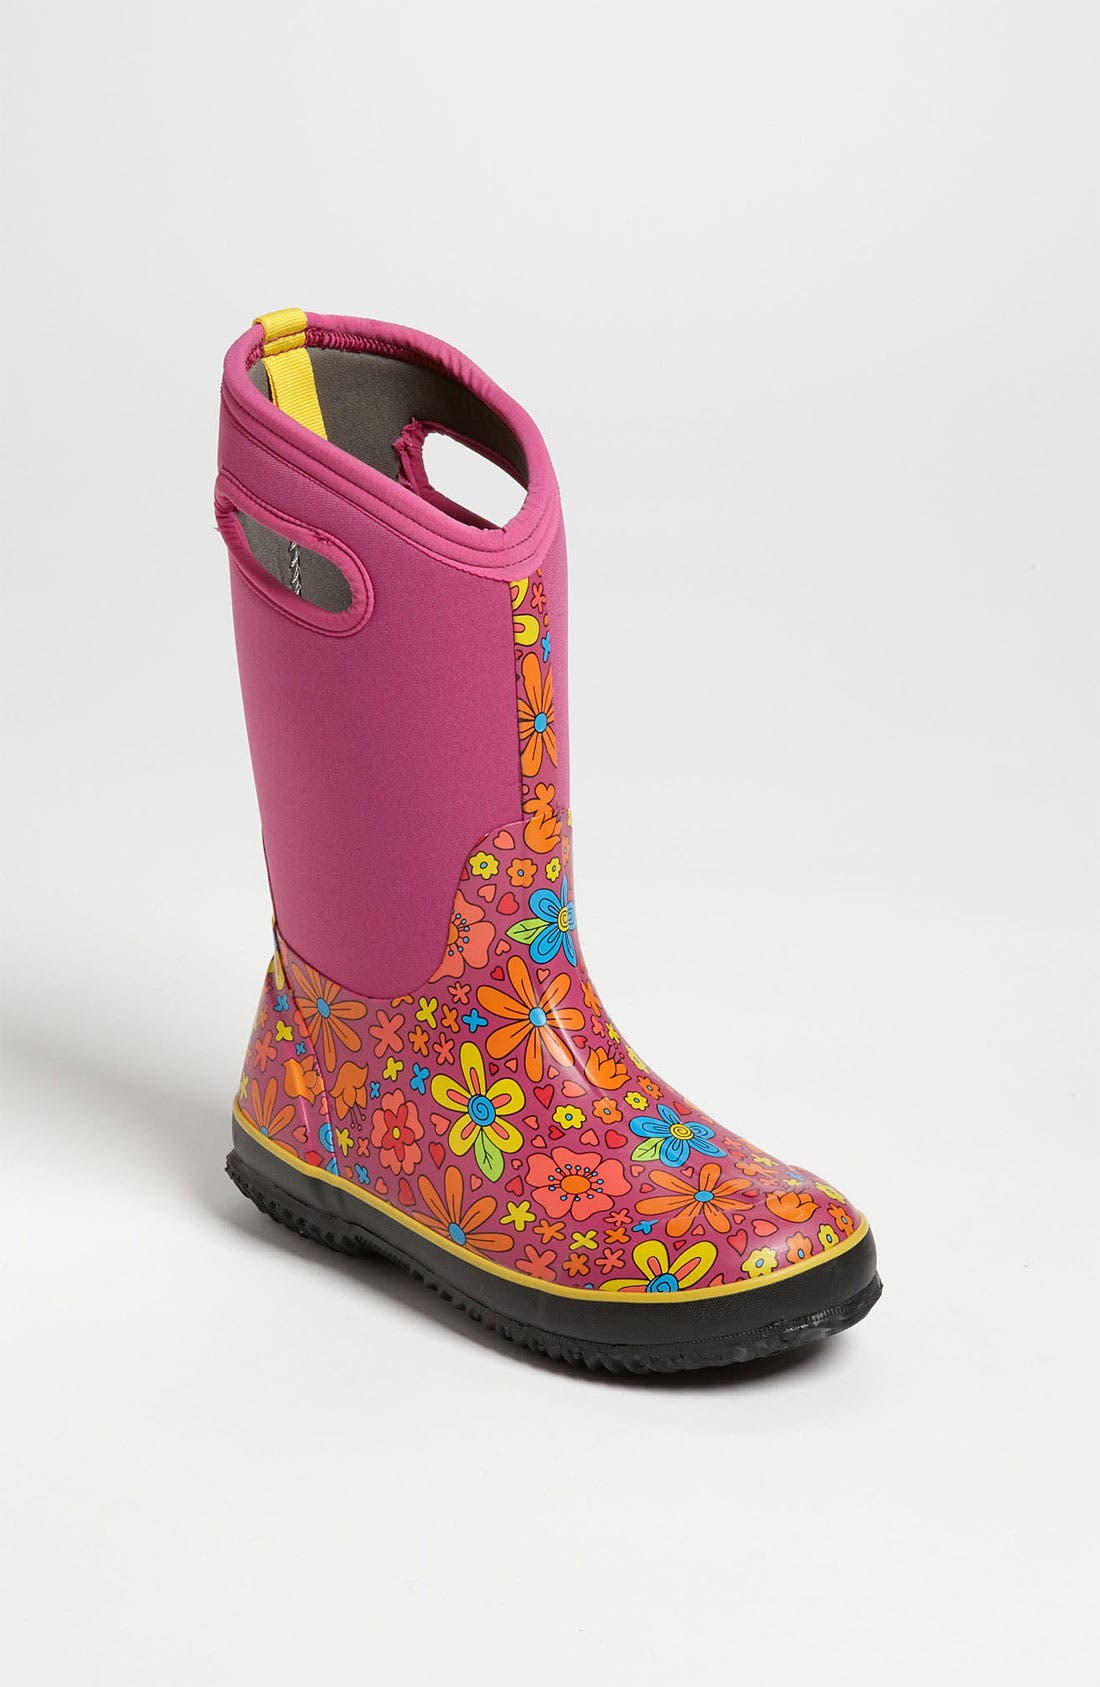 Alternate Image 1 Selected - Bogs 'Classic High - Mumsie' Waterproof Boot (Toddler, Little Kid & Big Kid)